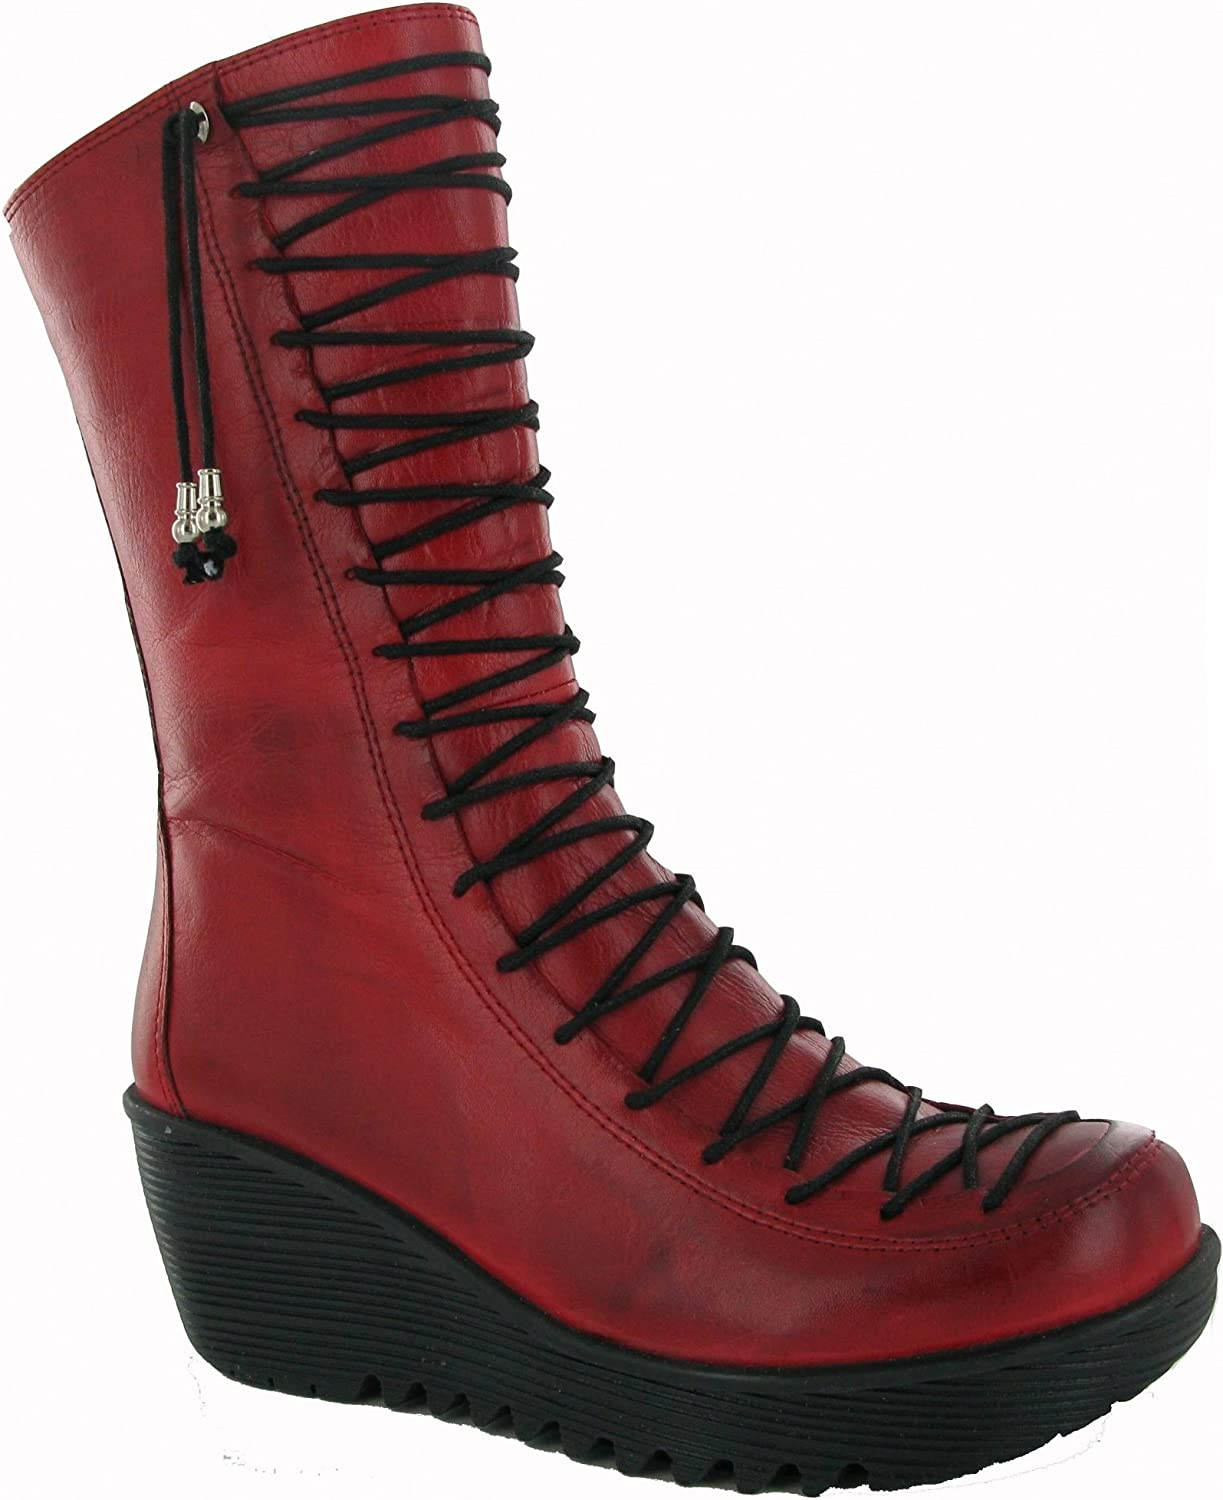 Riva Petrel Calf Length Boot Ladies Boots Ladies Other Boots